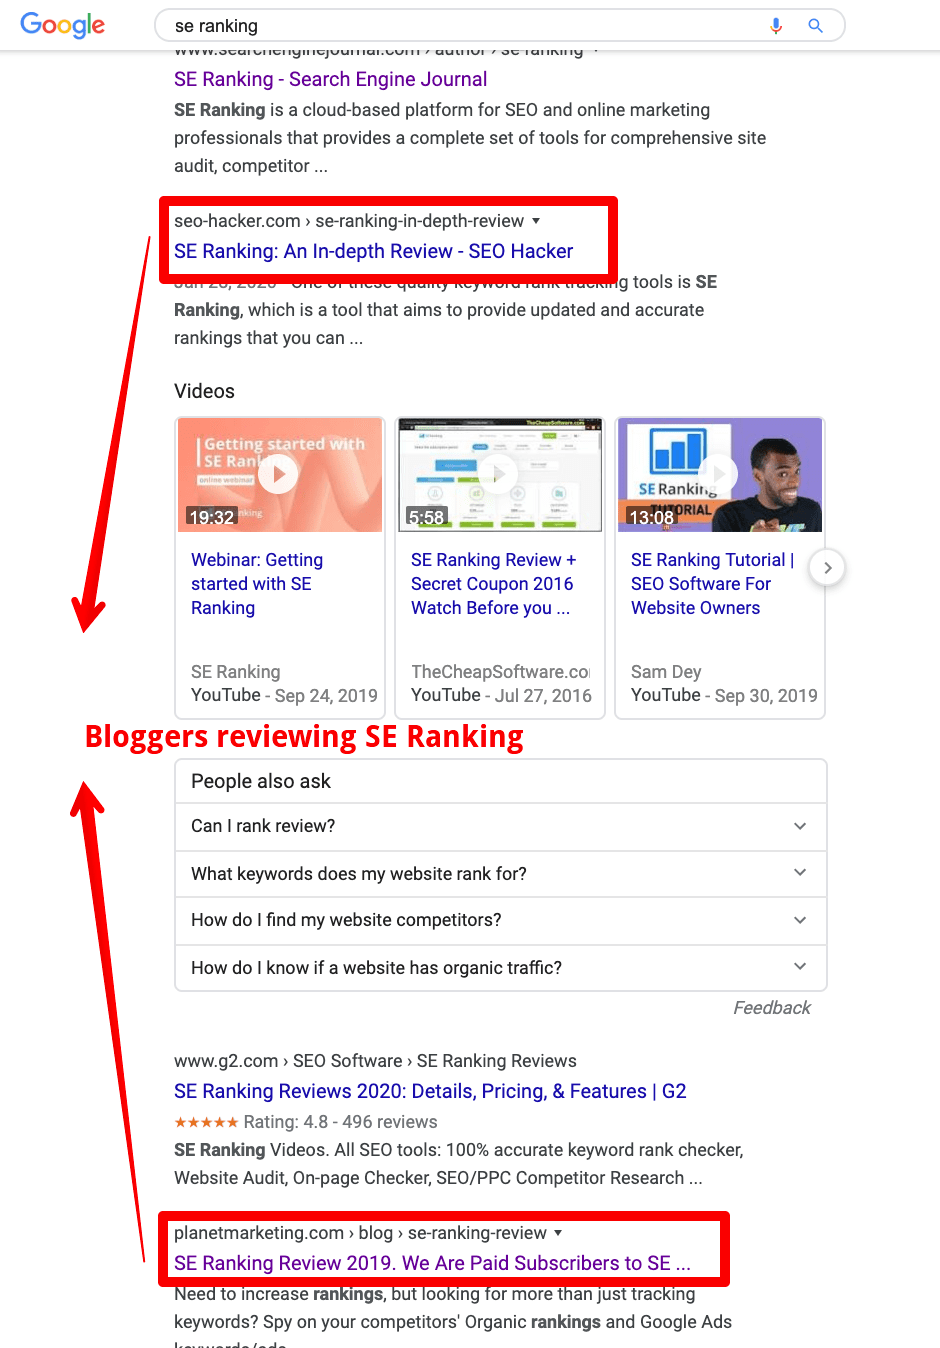 Bloggers' reviews in SE Ranking's Brand SERP